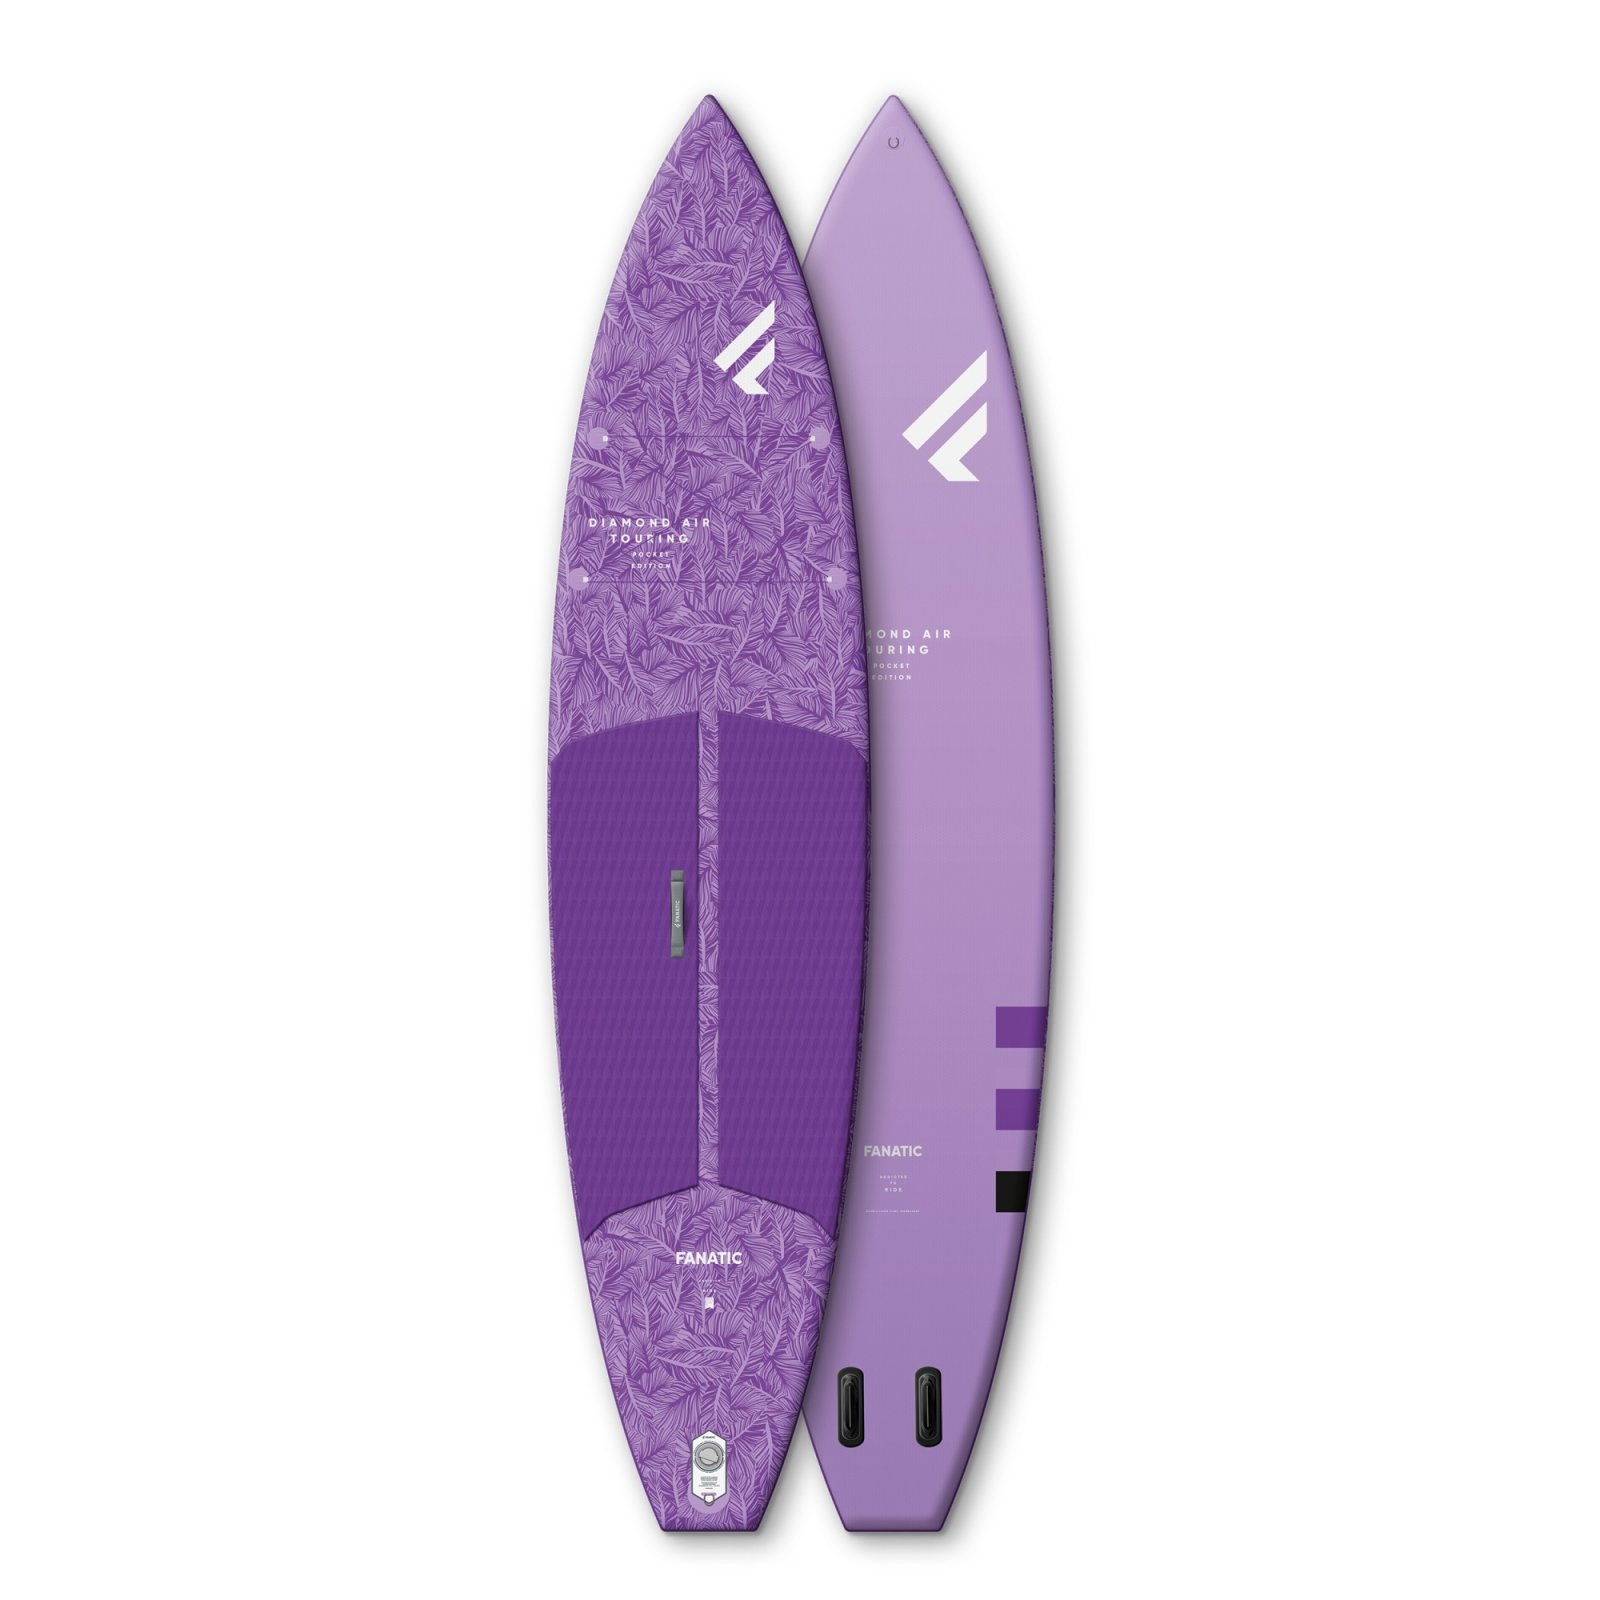 Fanatic Diamond Air Touring Pocket 11'6 Inflatable Stand Up Paddleboard